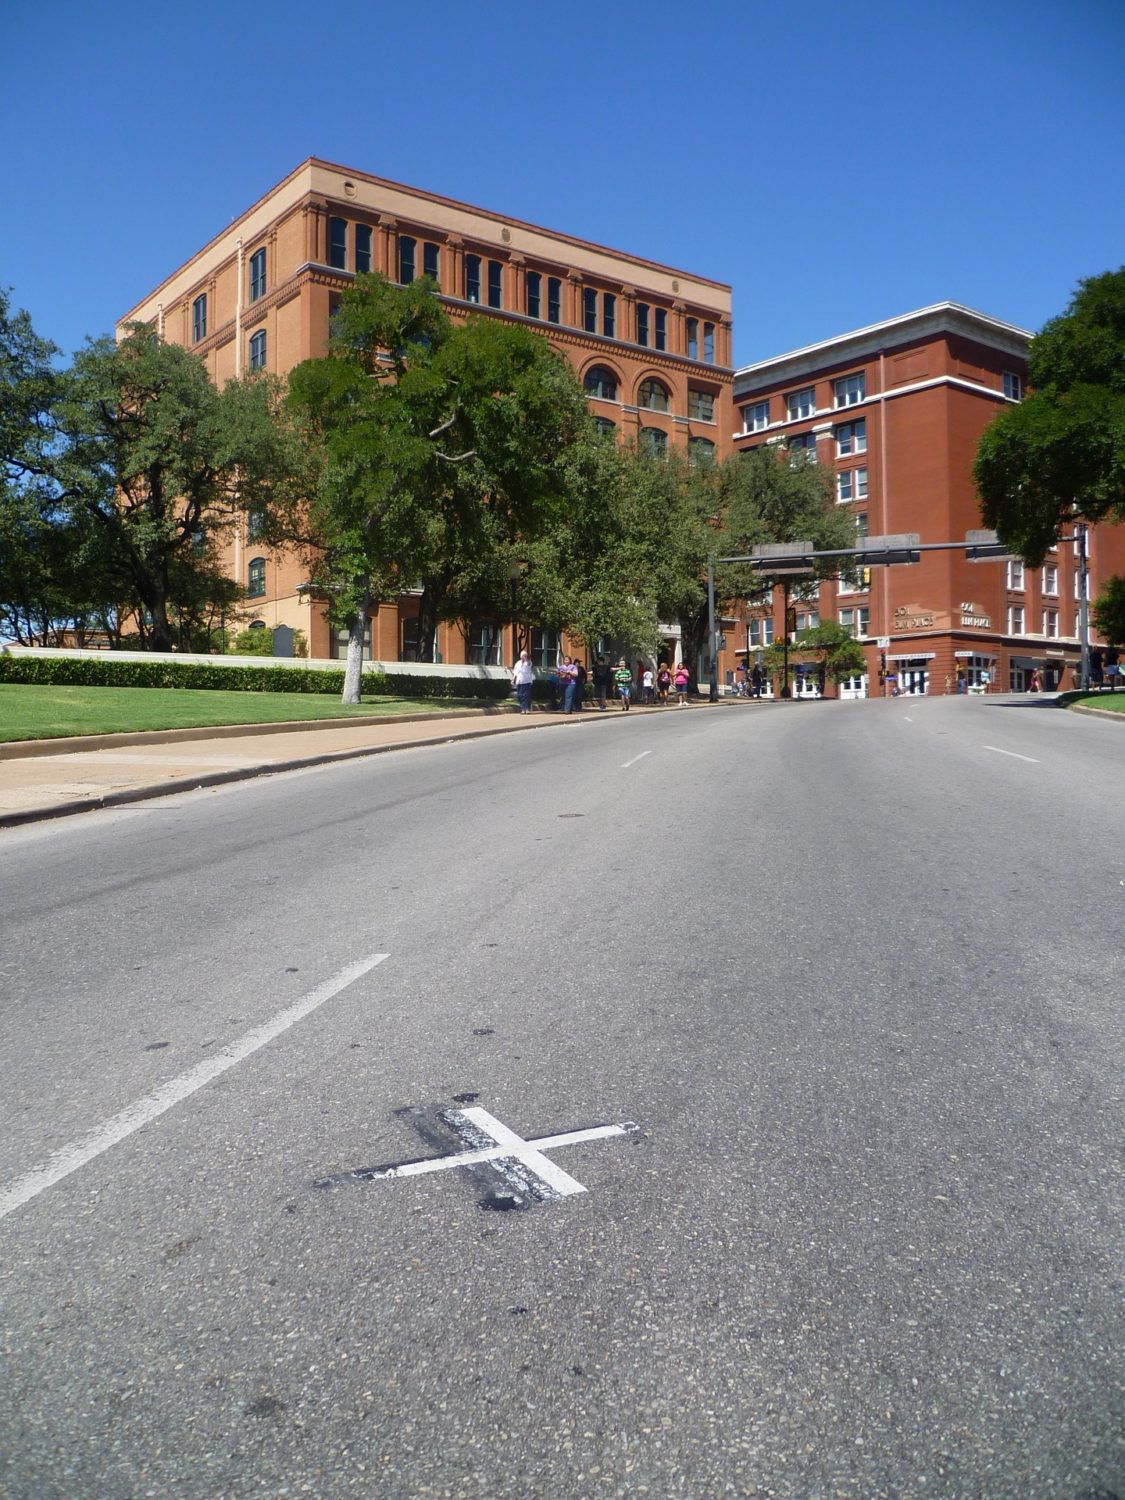 Dealey Plaza, Dallas, Texas